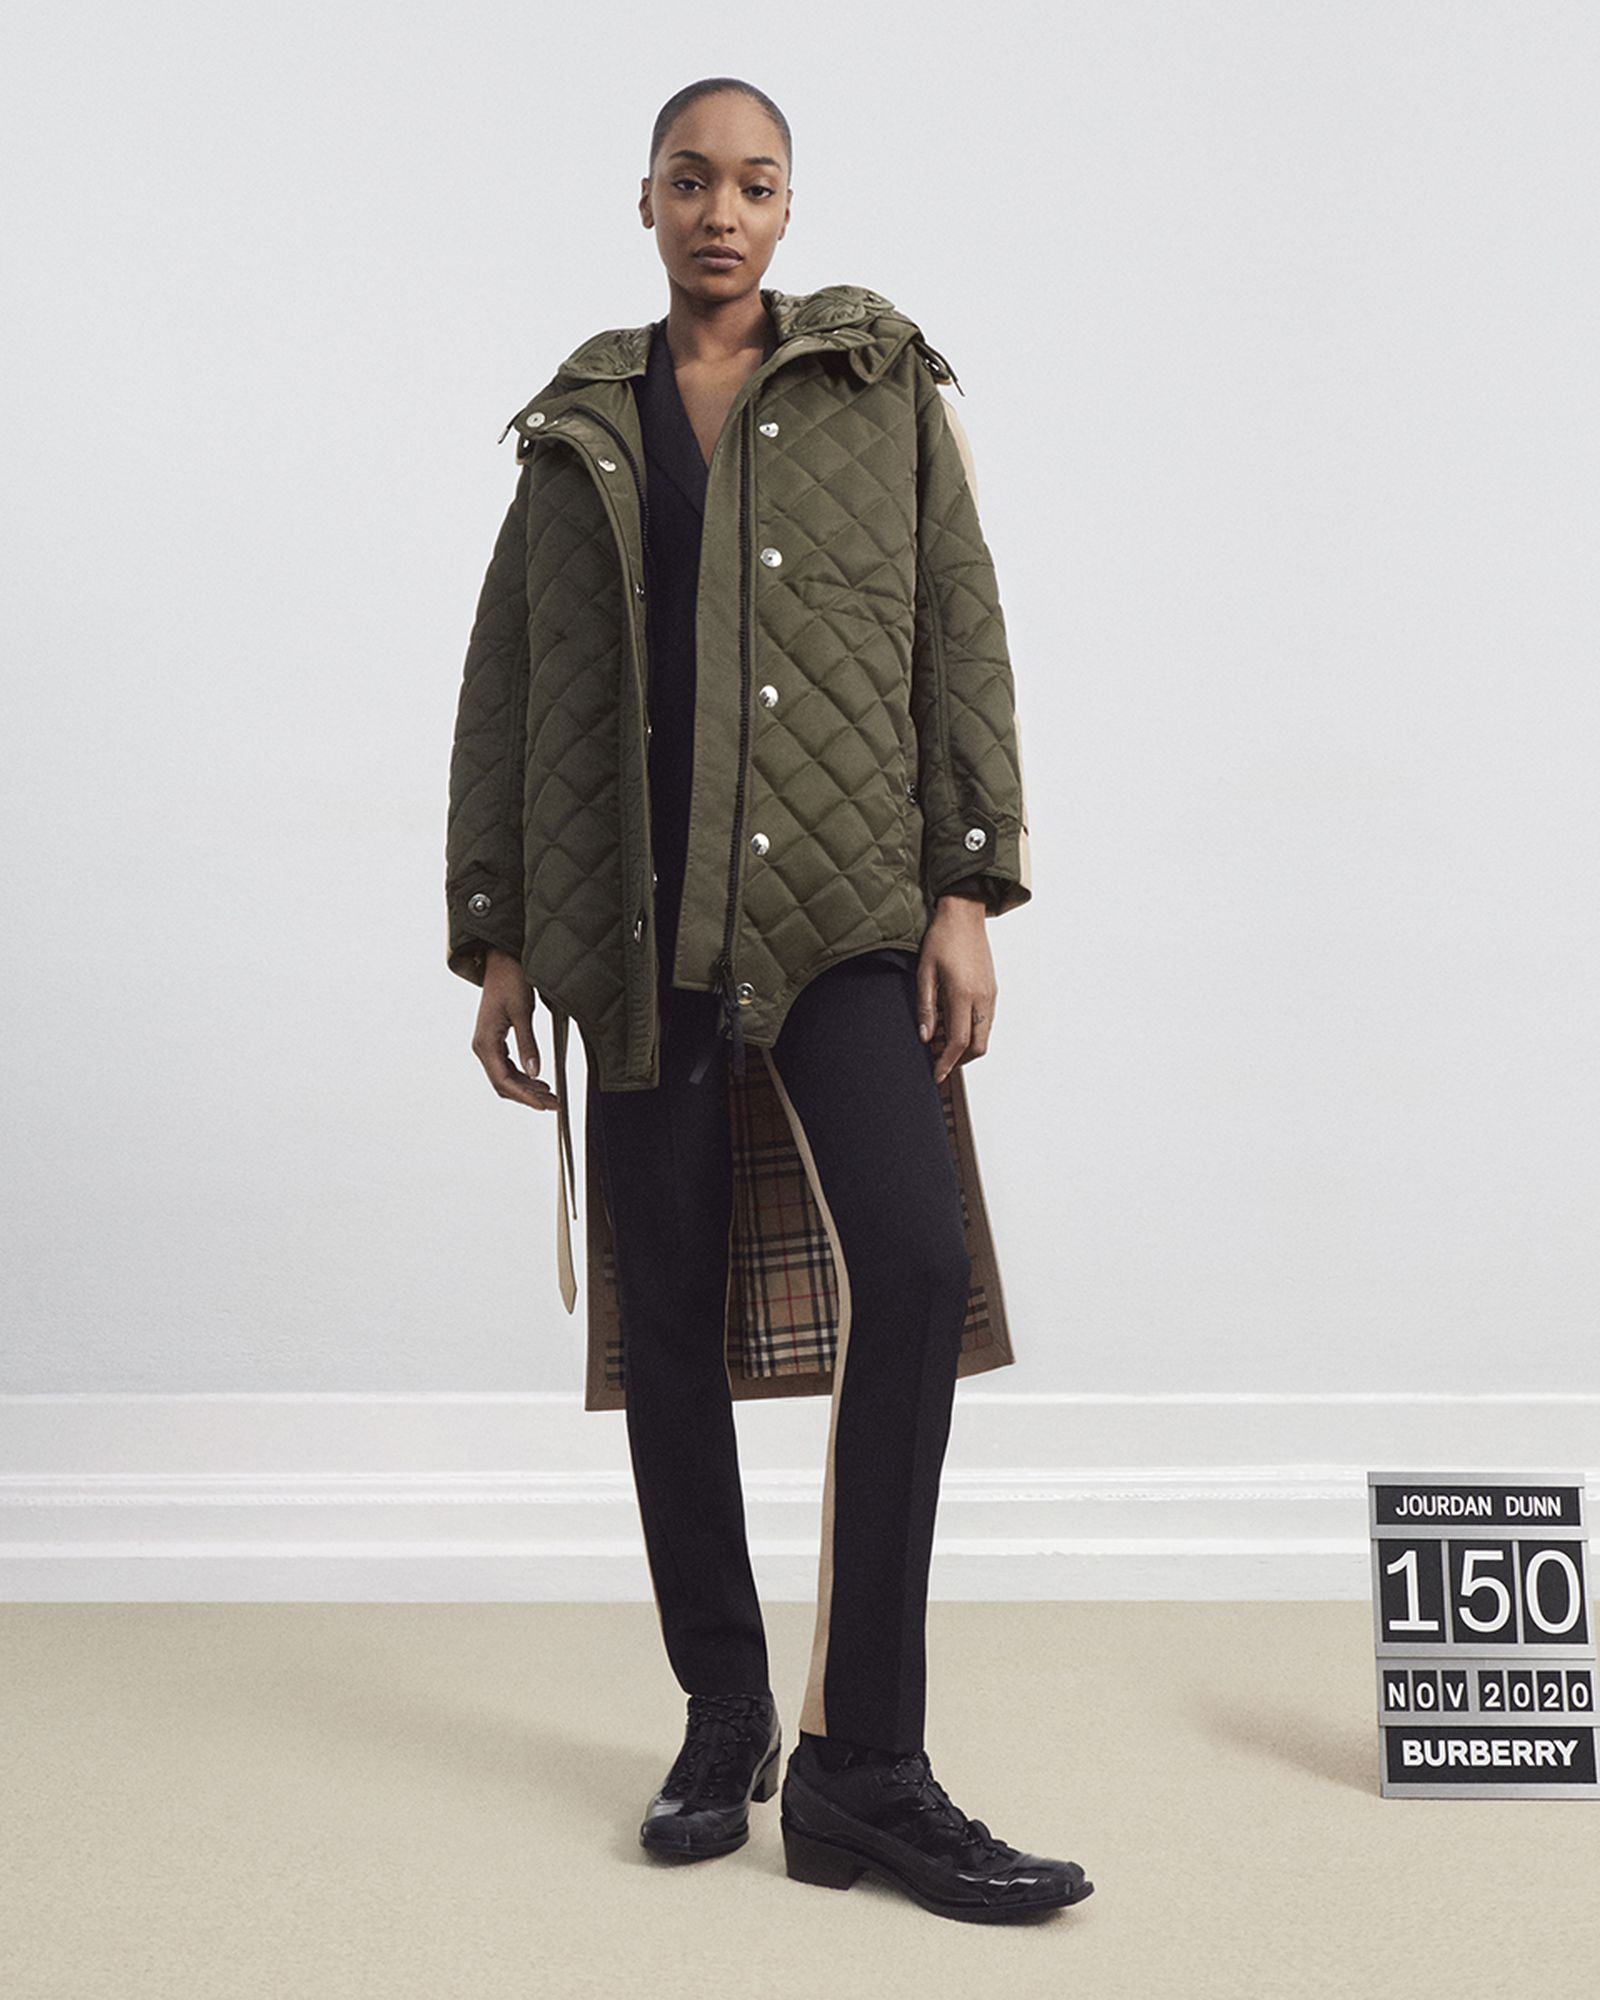 burberry-future-archive-collection-01